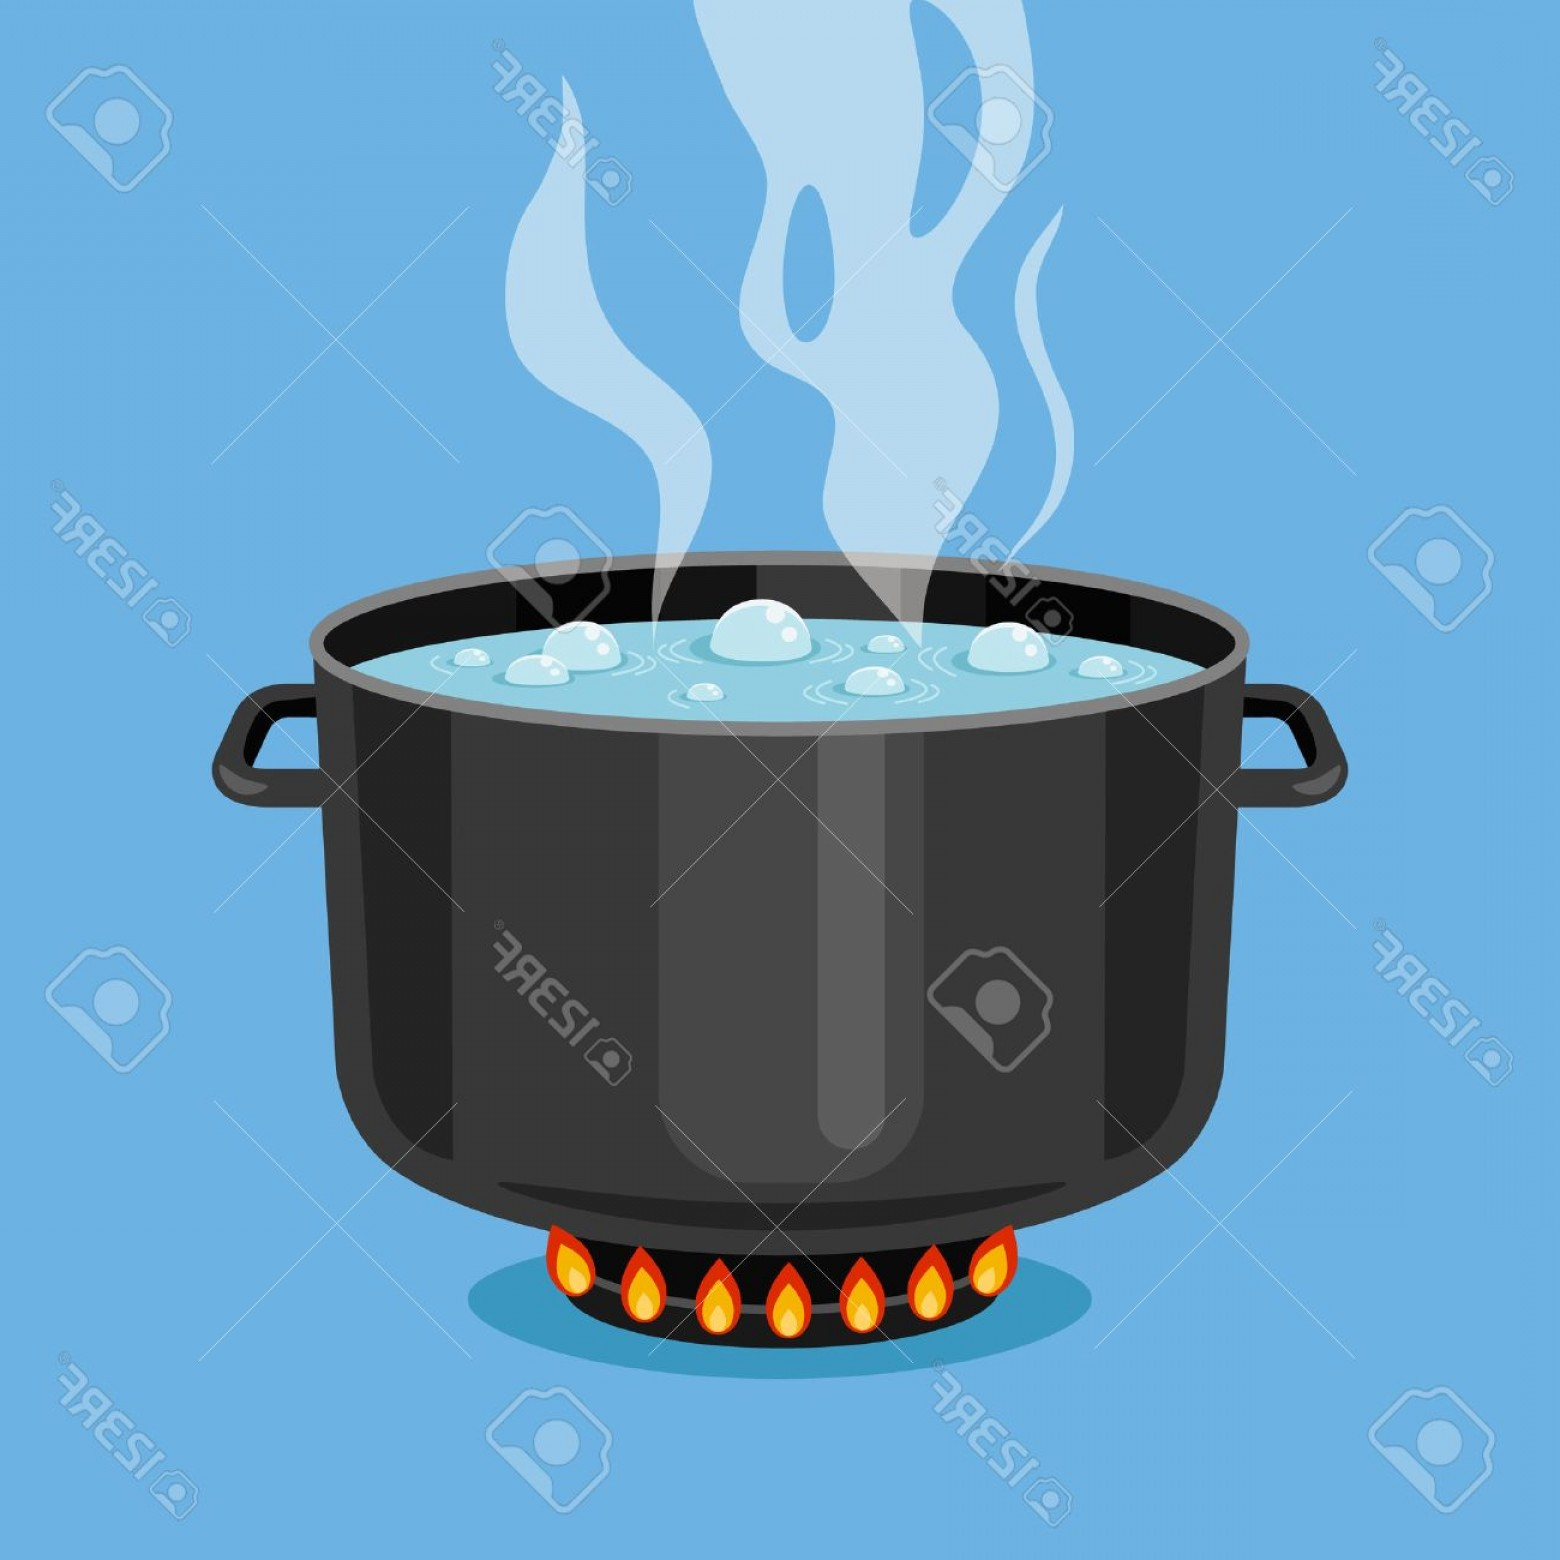 Big Cook With Cooking Pot Vector: Photostock Vector Boiling Water In Pan Black Cooking Pot On Stove With Water And Steam Flat Design Graphics Elements V